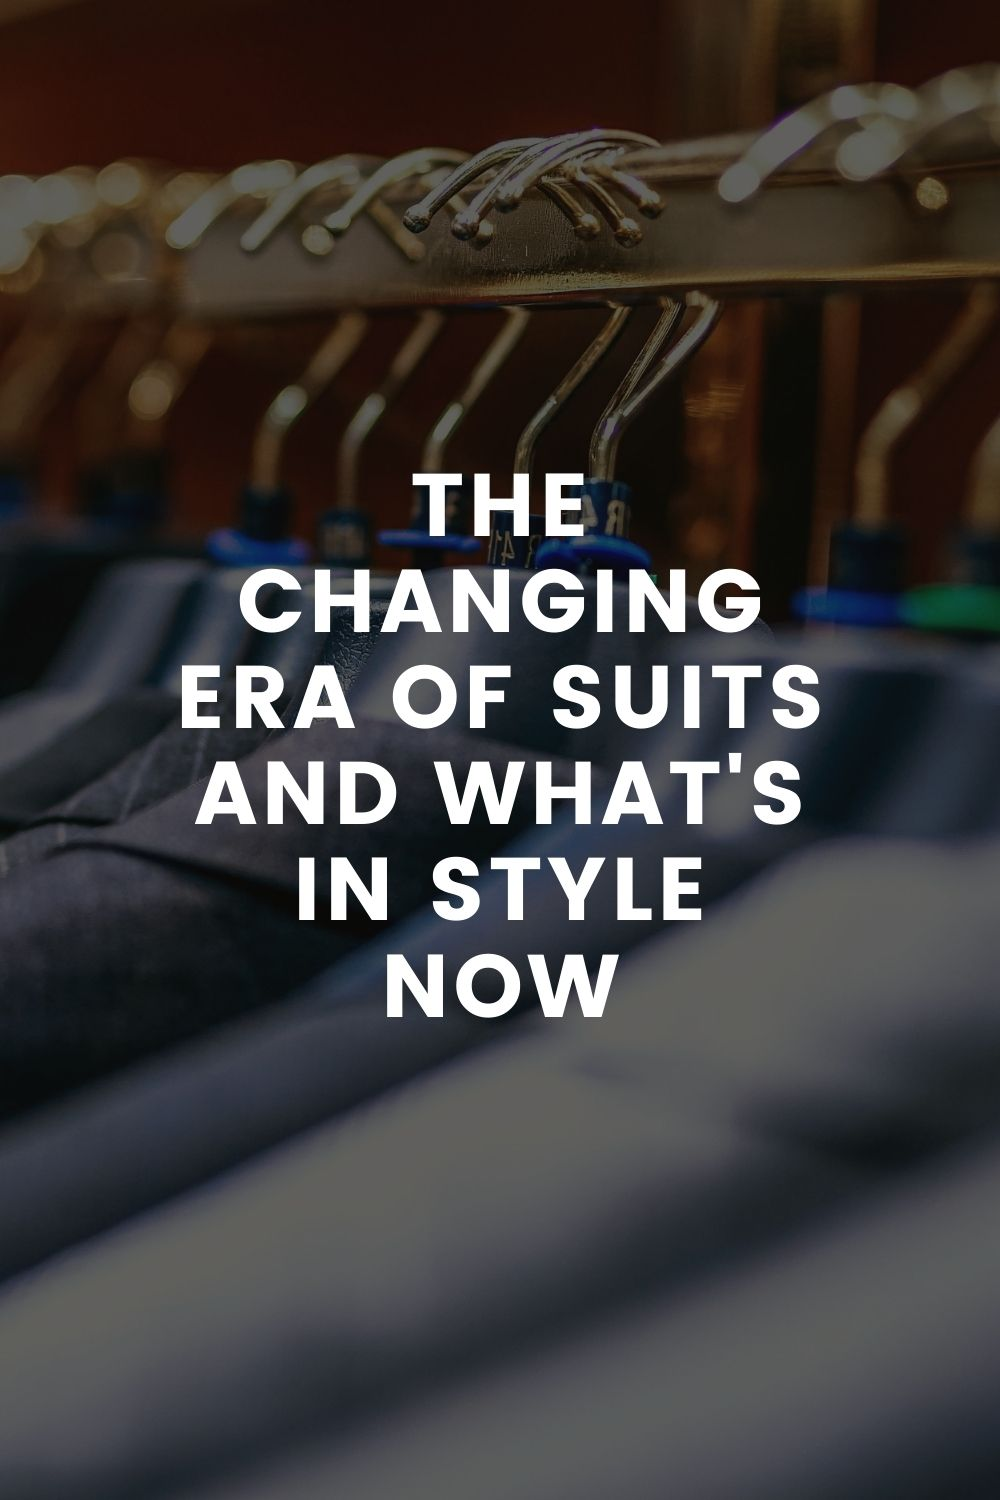 The Changing Era of Suits and What's in Style Now